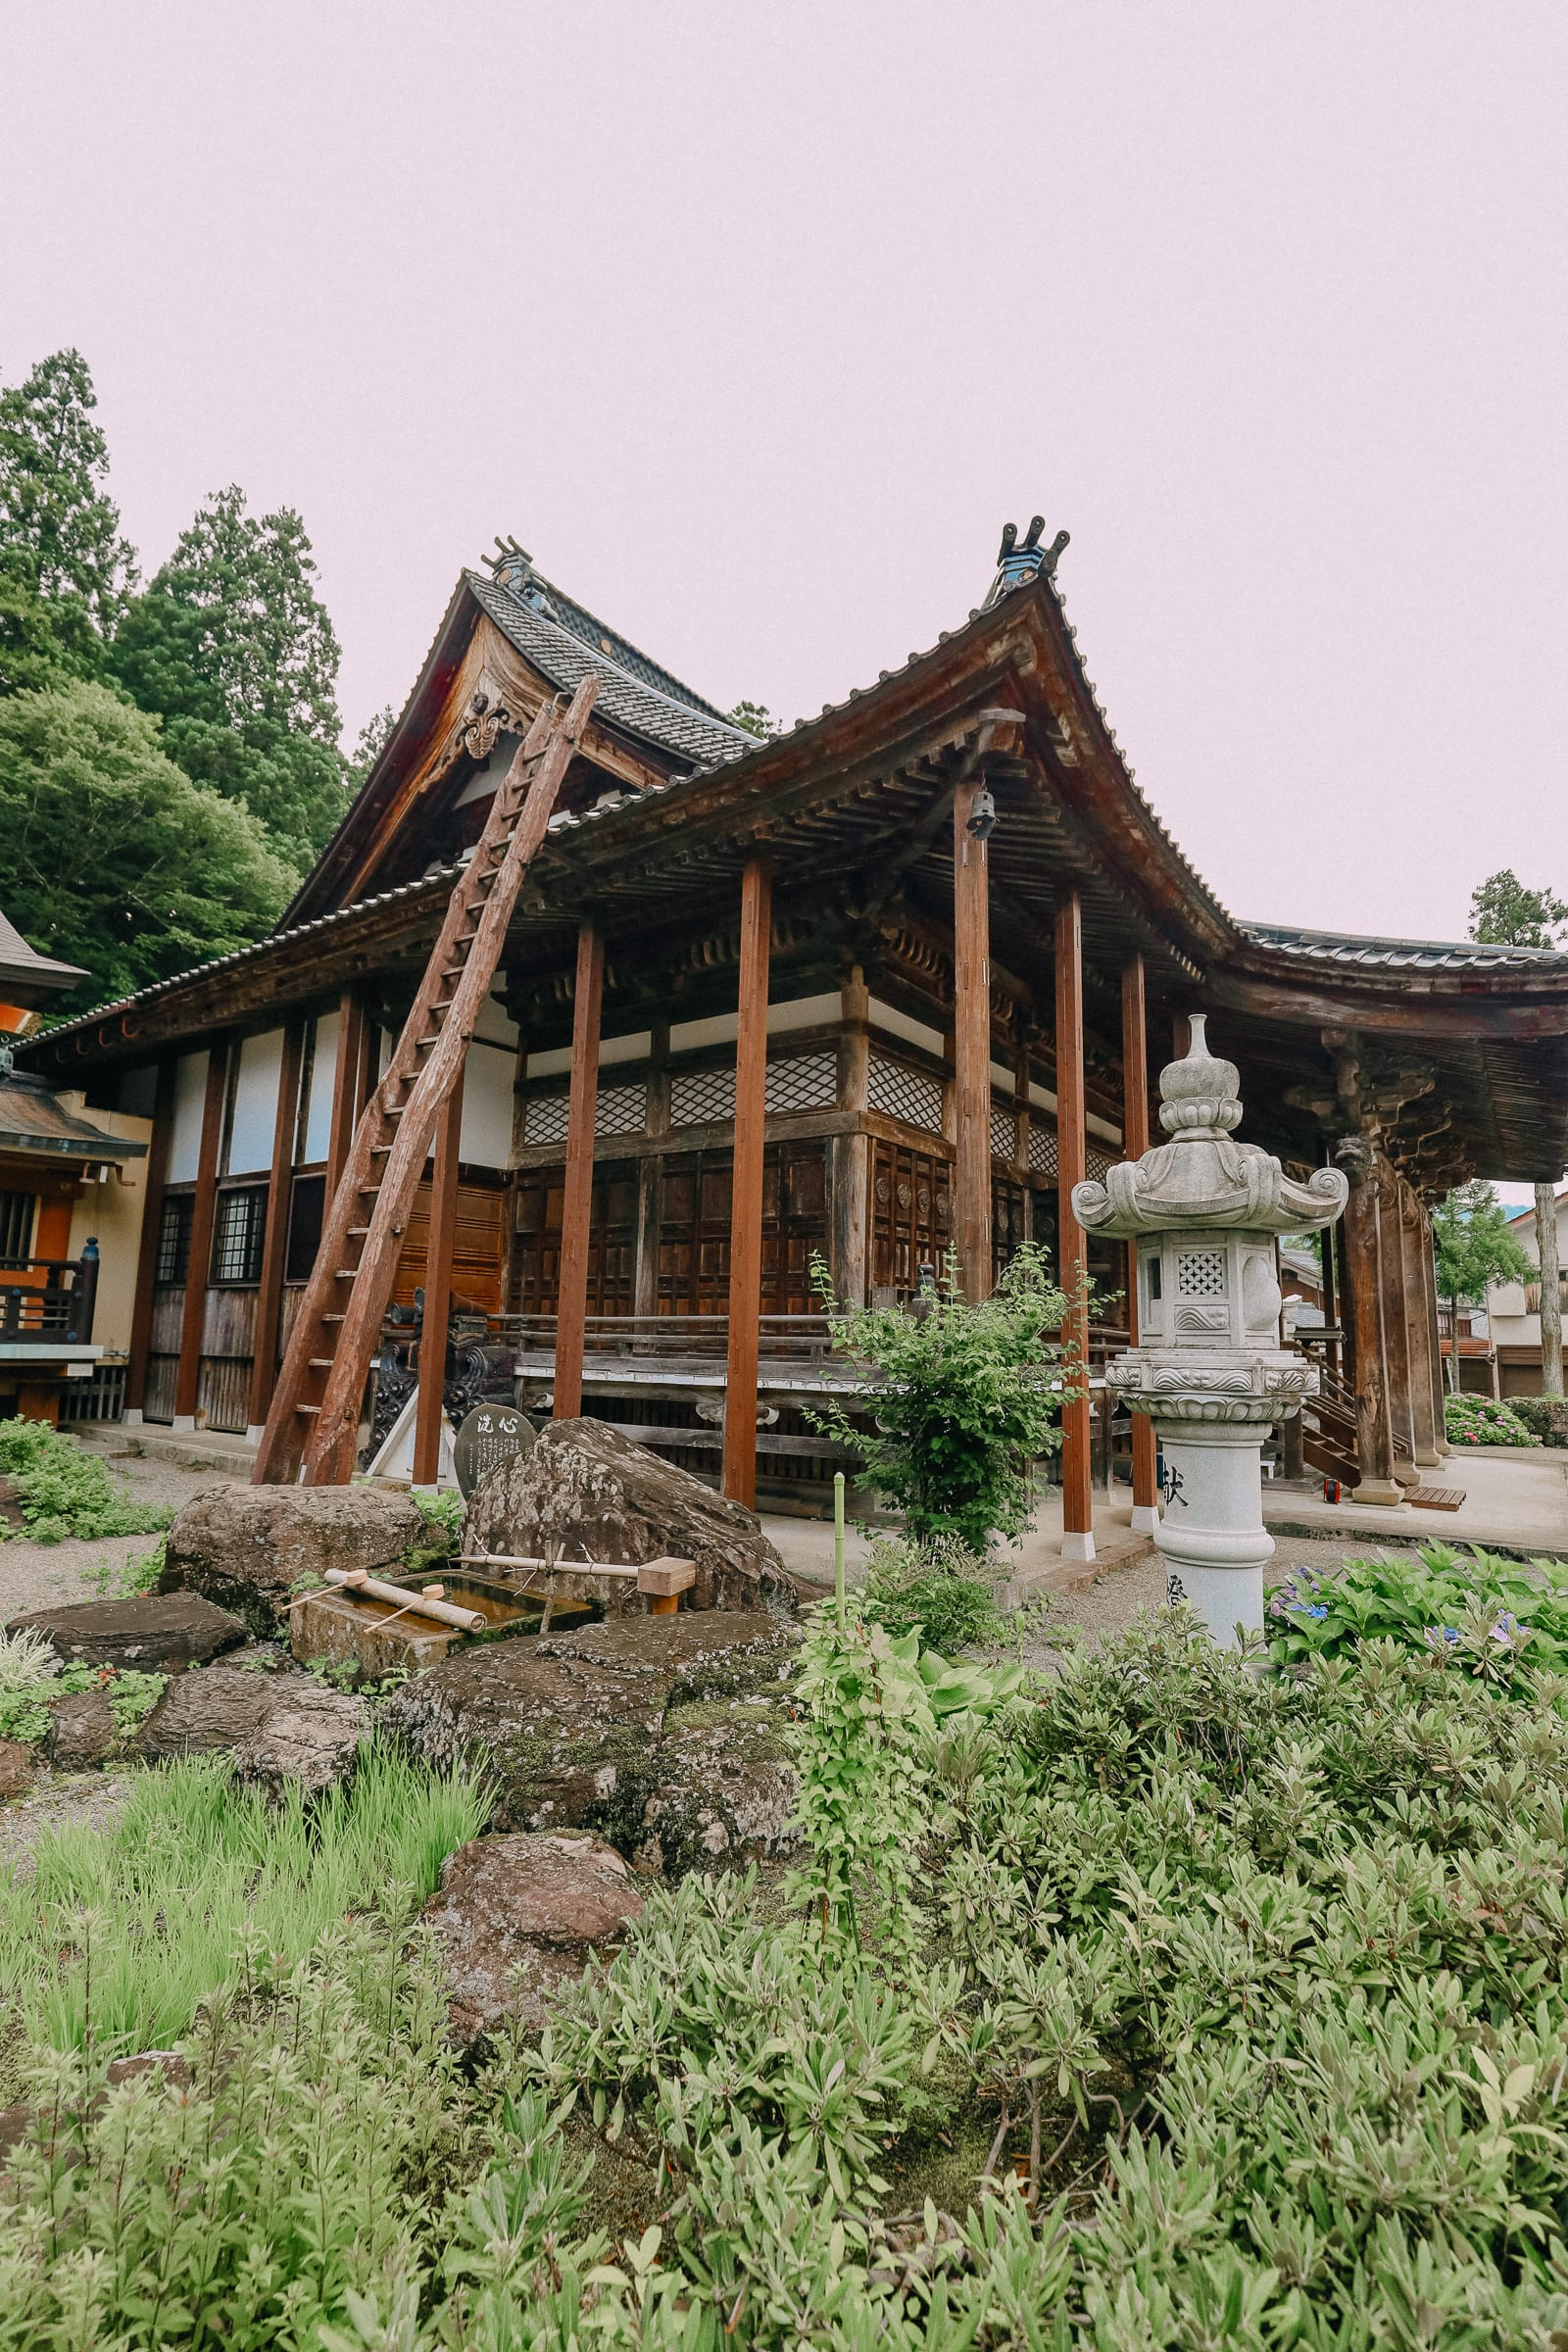 A Misogi Purification Ritual And Temples In Hakusan City - Japan (17)